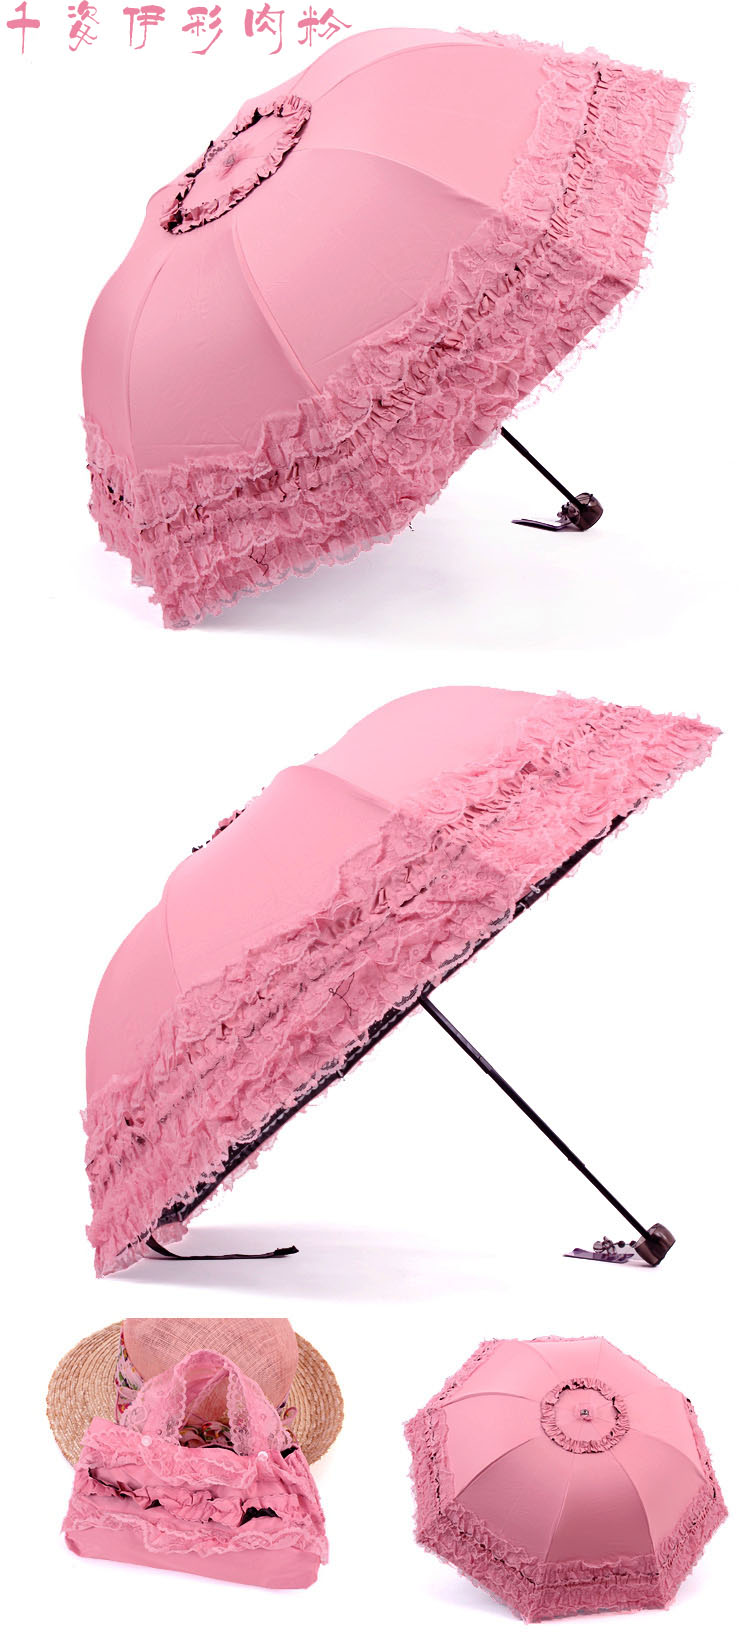 UV Protected Parasol Sunny and Rainy Umbrella Rain Women Girls White ...